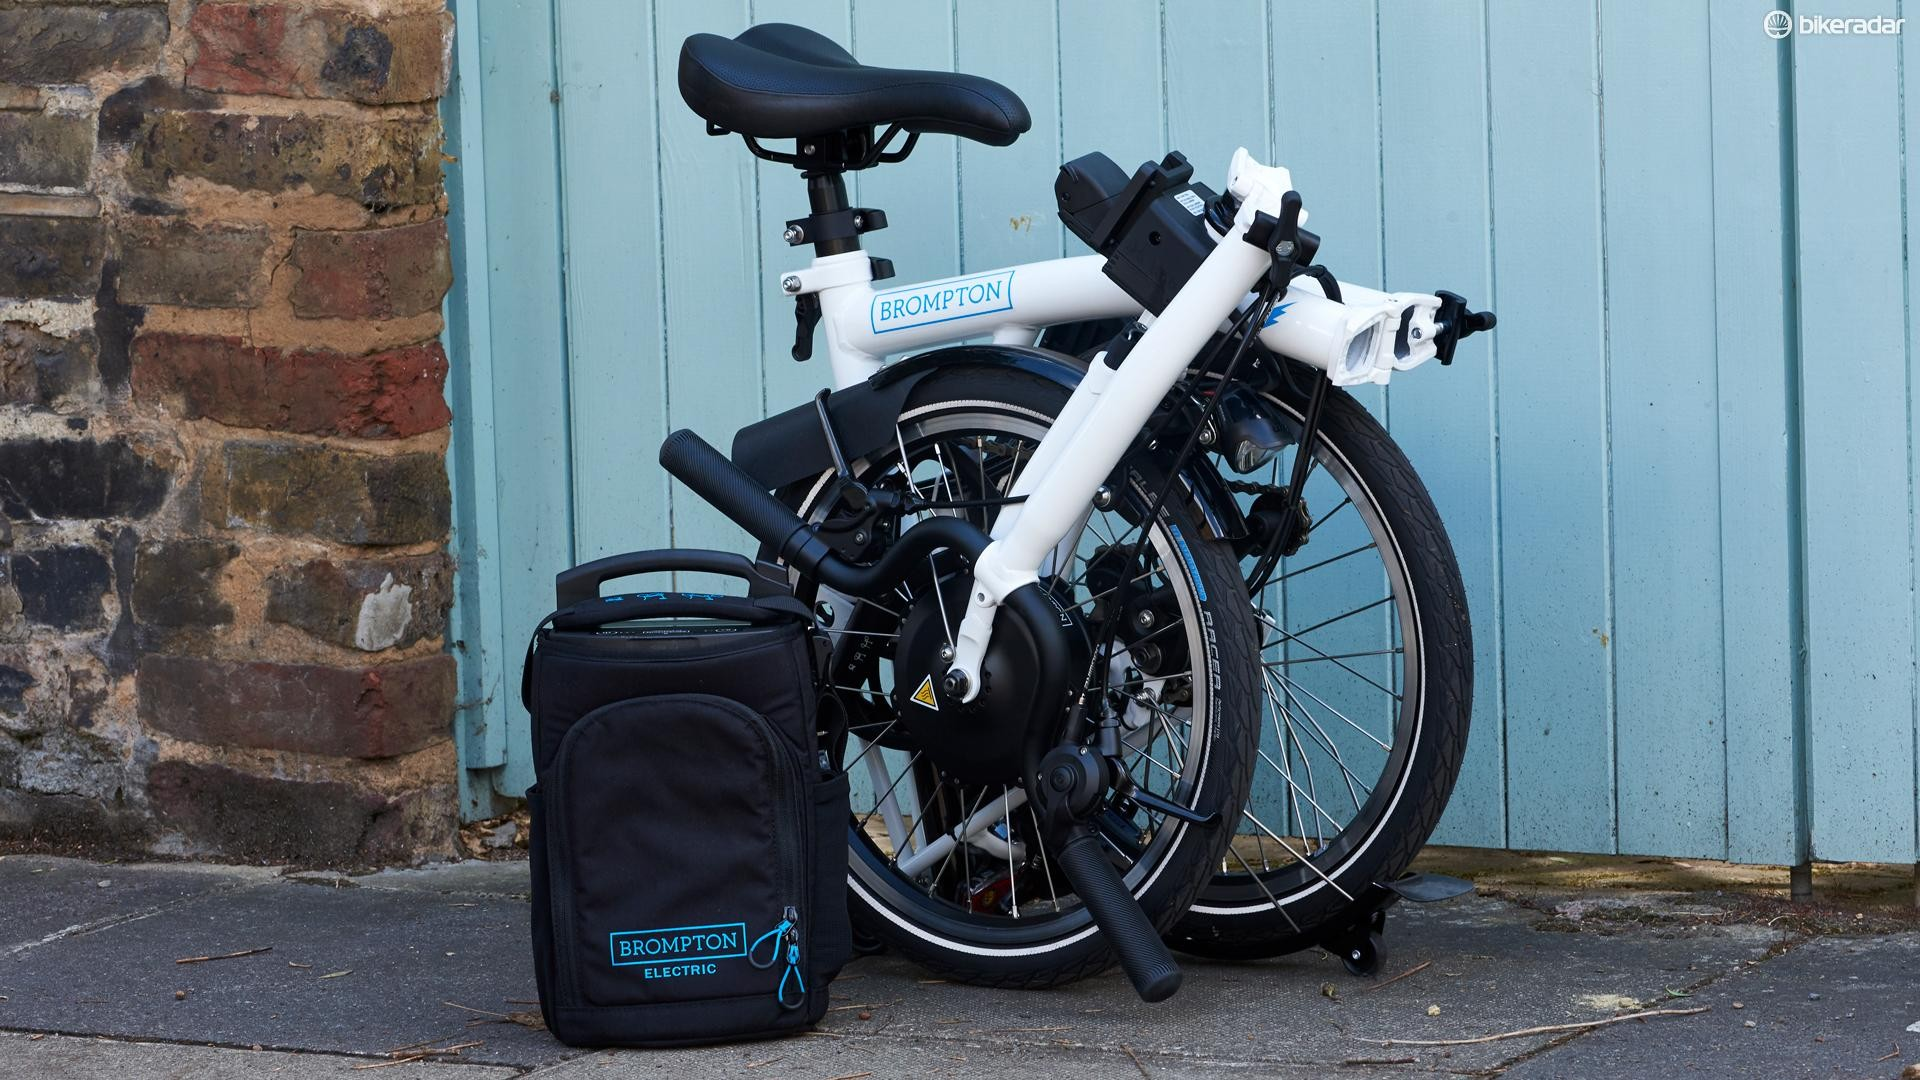 It sure folds up neat, but Brompton's Electric weighs a hefty 16.6kg